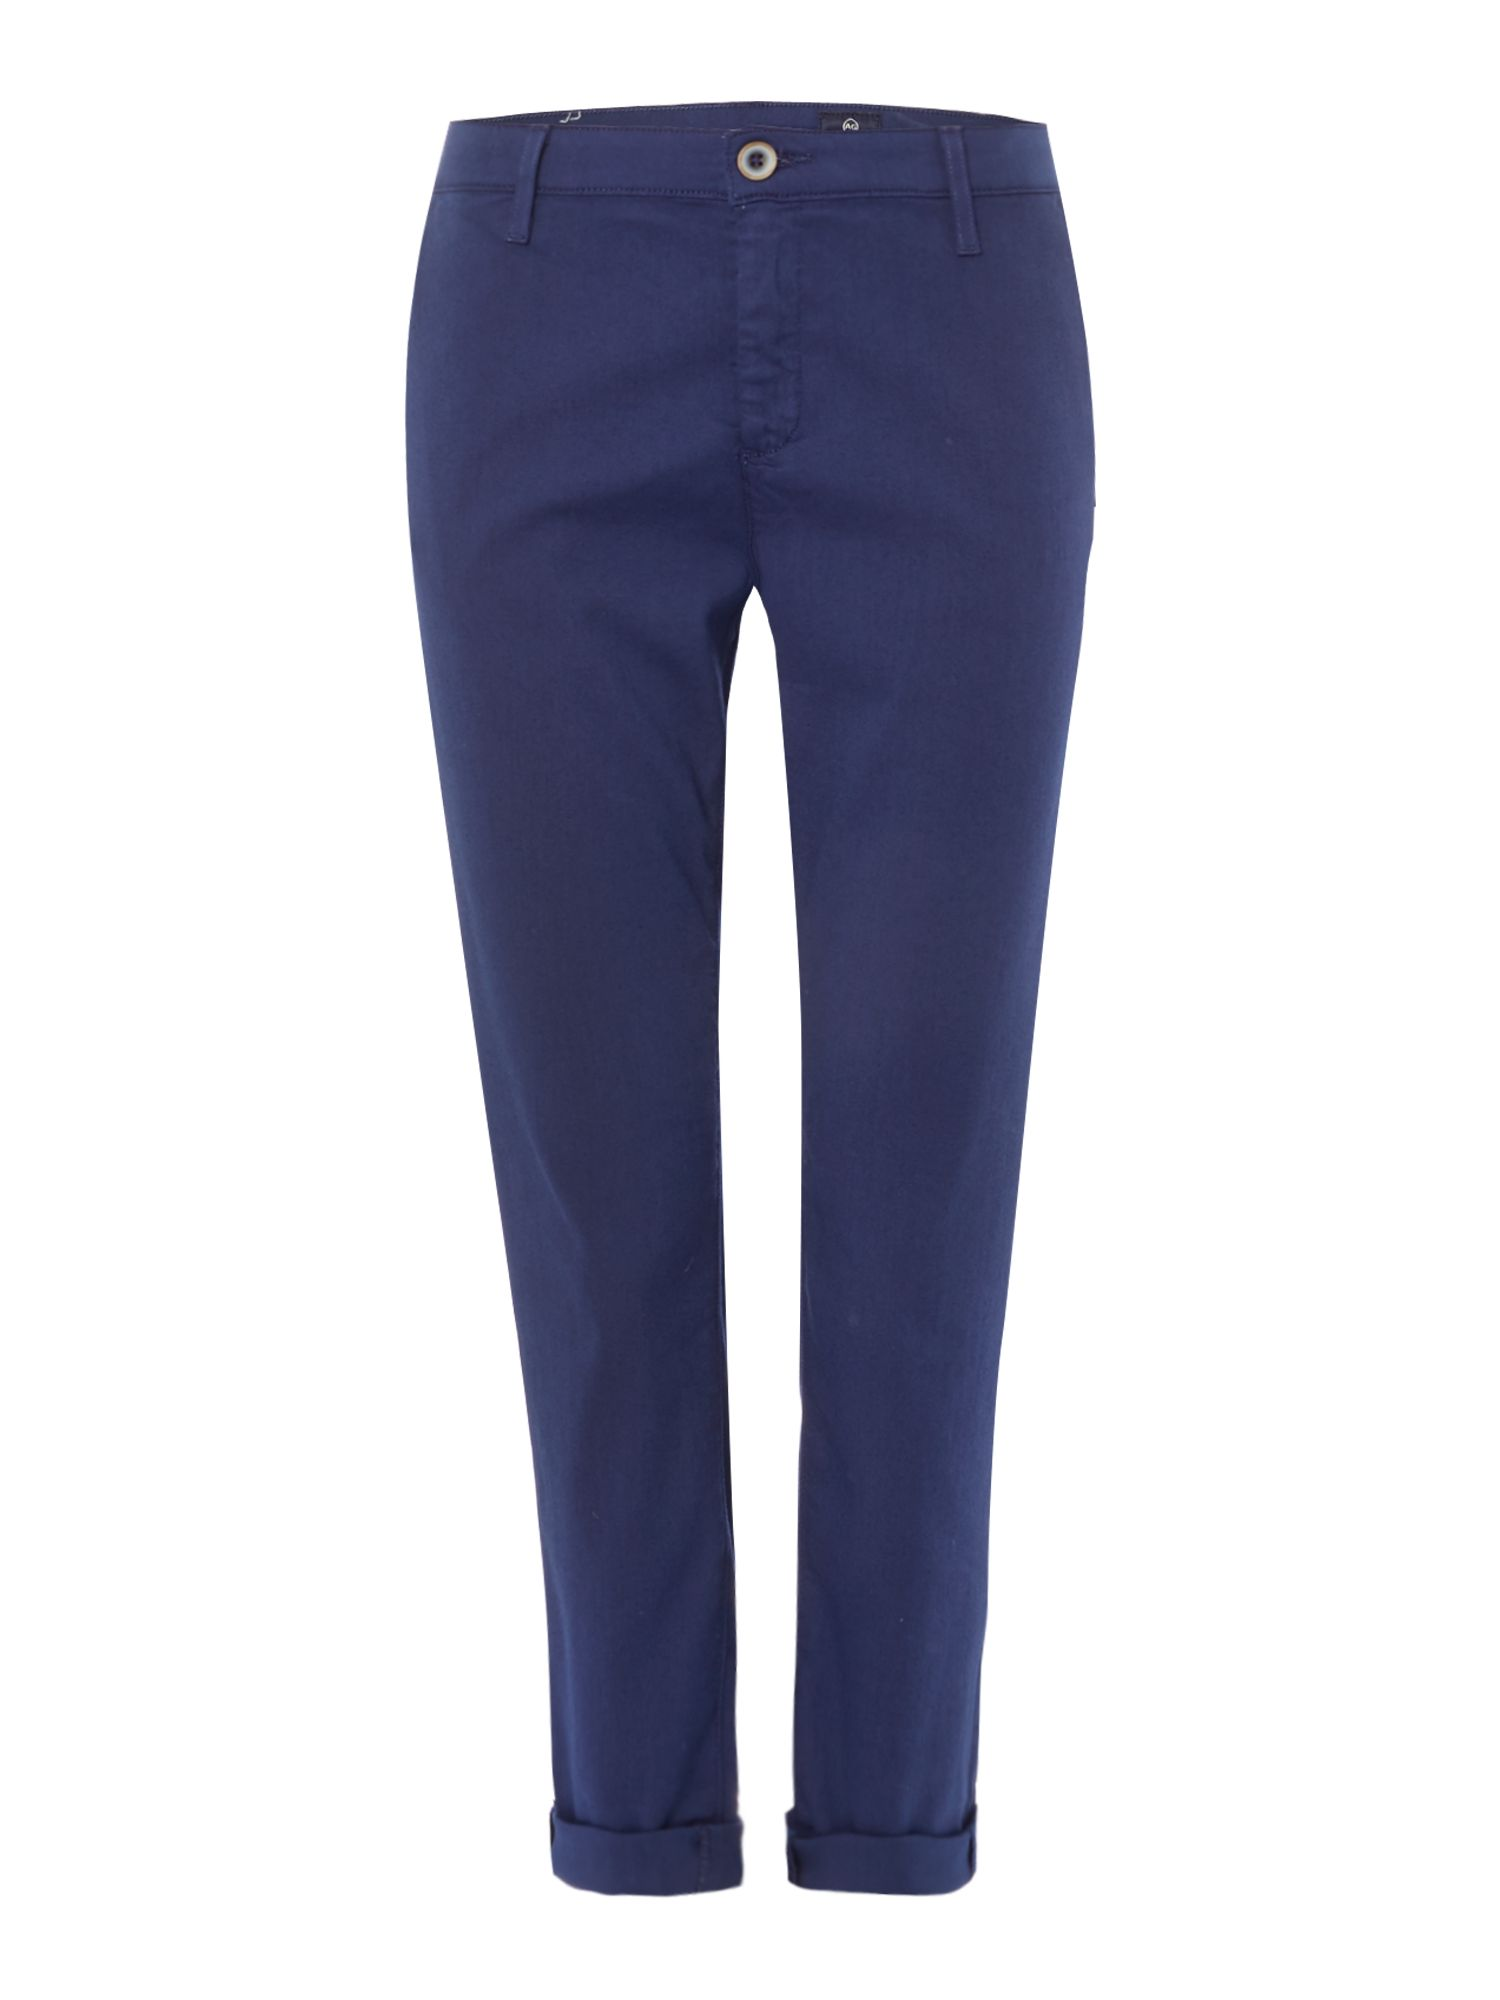 AG Jeans AG Jeans The Tristan Trouser in colonial blue, Blue